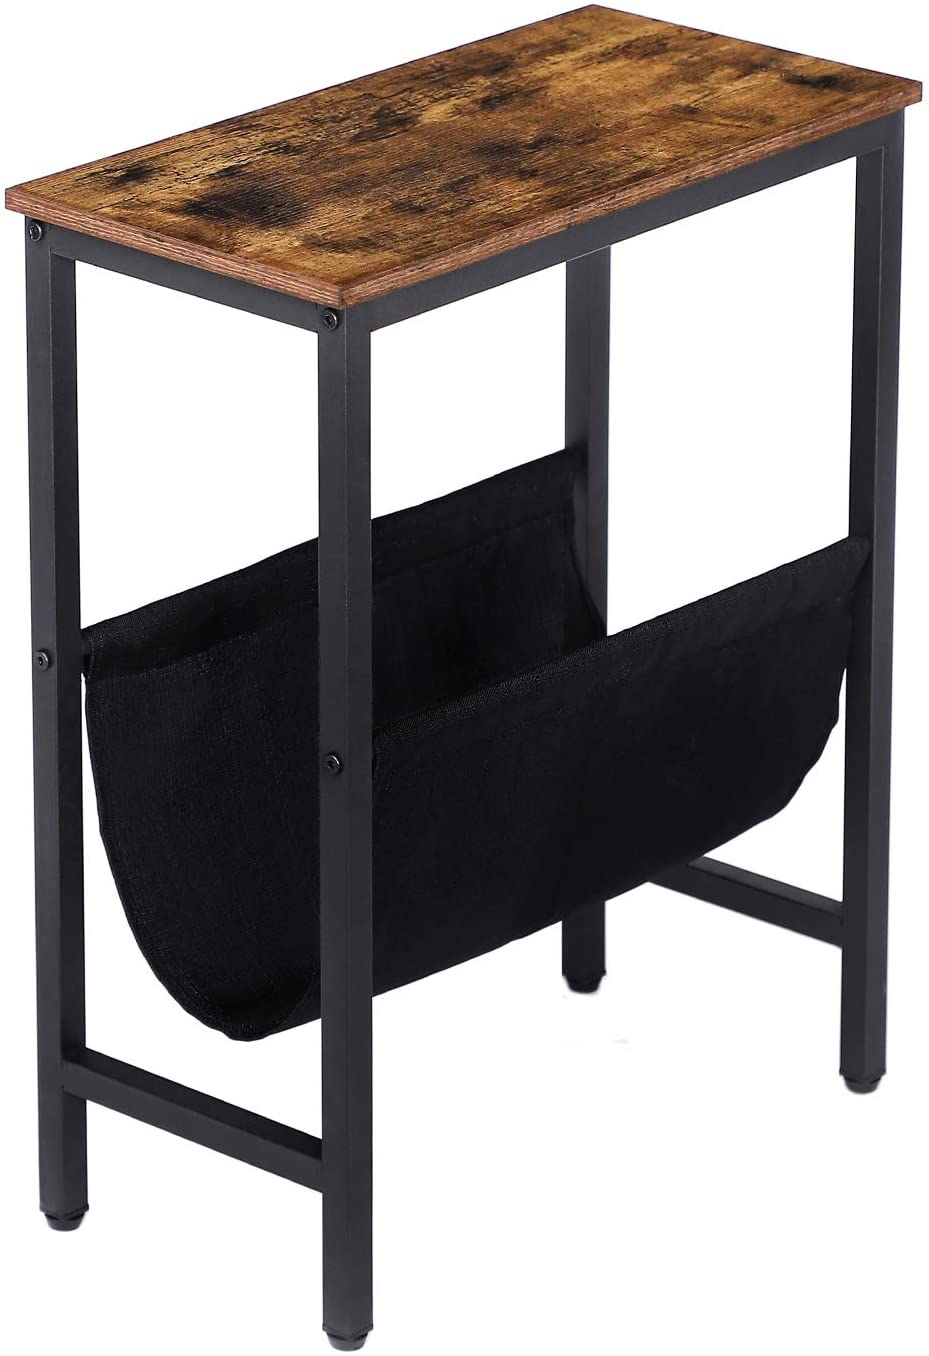 HOOBRO Side Table, Narrow End Table with Magazine Holder Sling, 18.9 x 9.4 x 24 Inch Industrial Nightstand for Small Spaces, Wood Look Accent Furniture with Metal Frame, Rustic Brown BF41BZ01